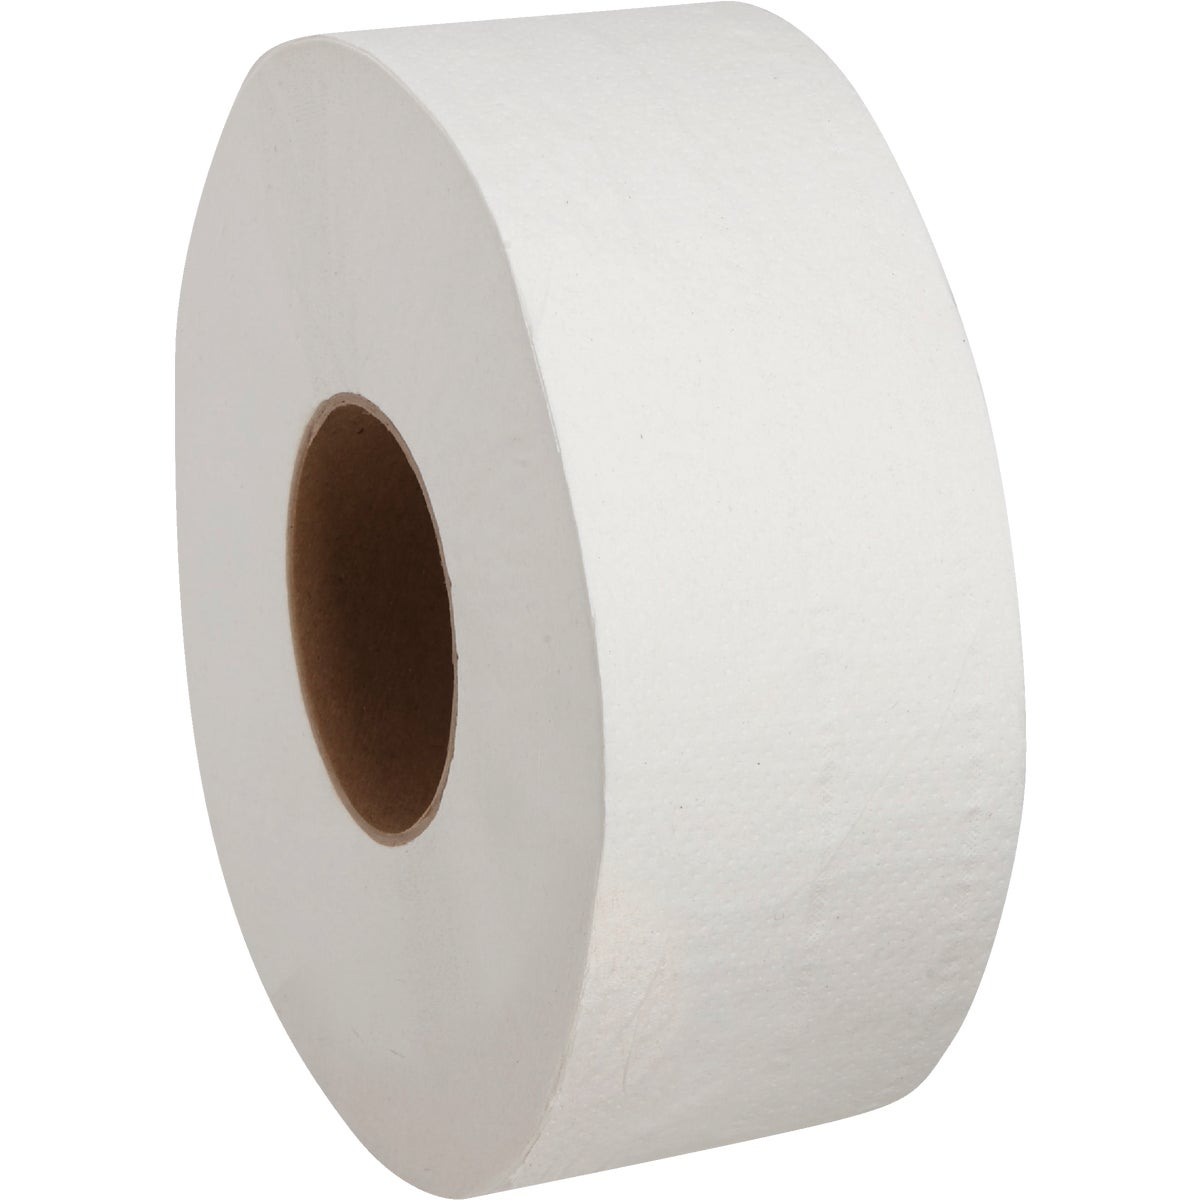 2-PLY JUMBO BATH TISSUE - 75009506 by Bunzl USA